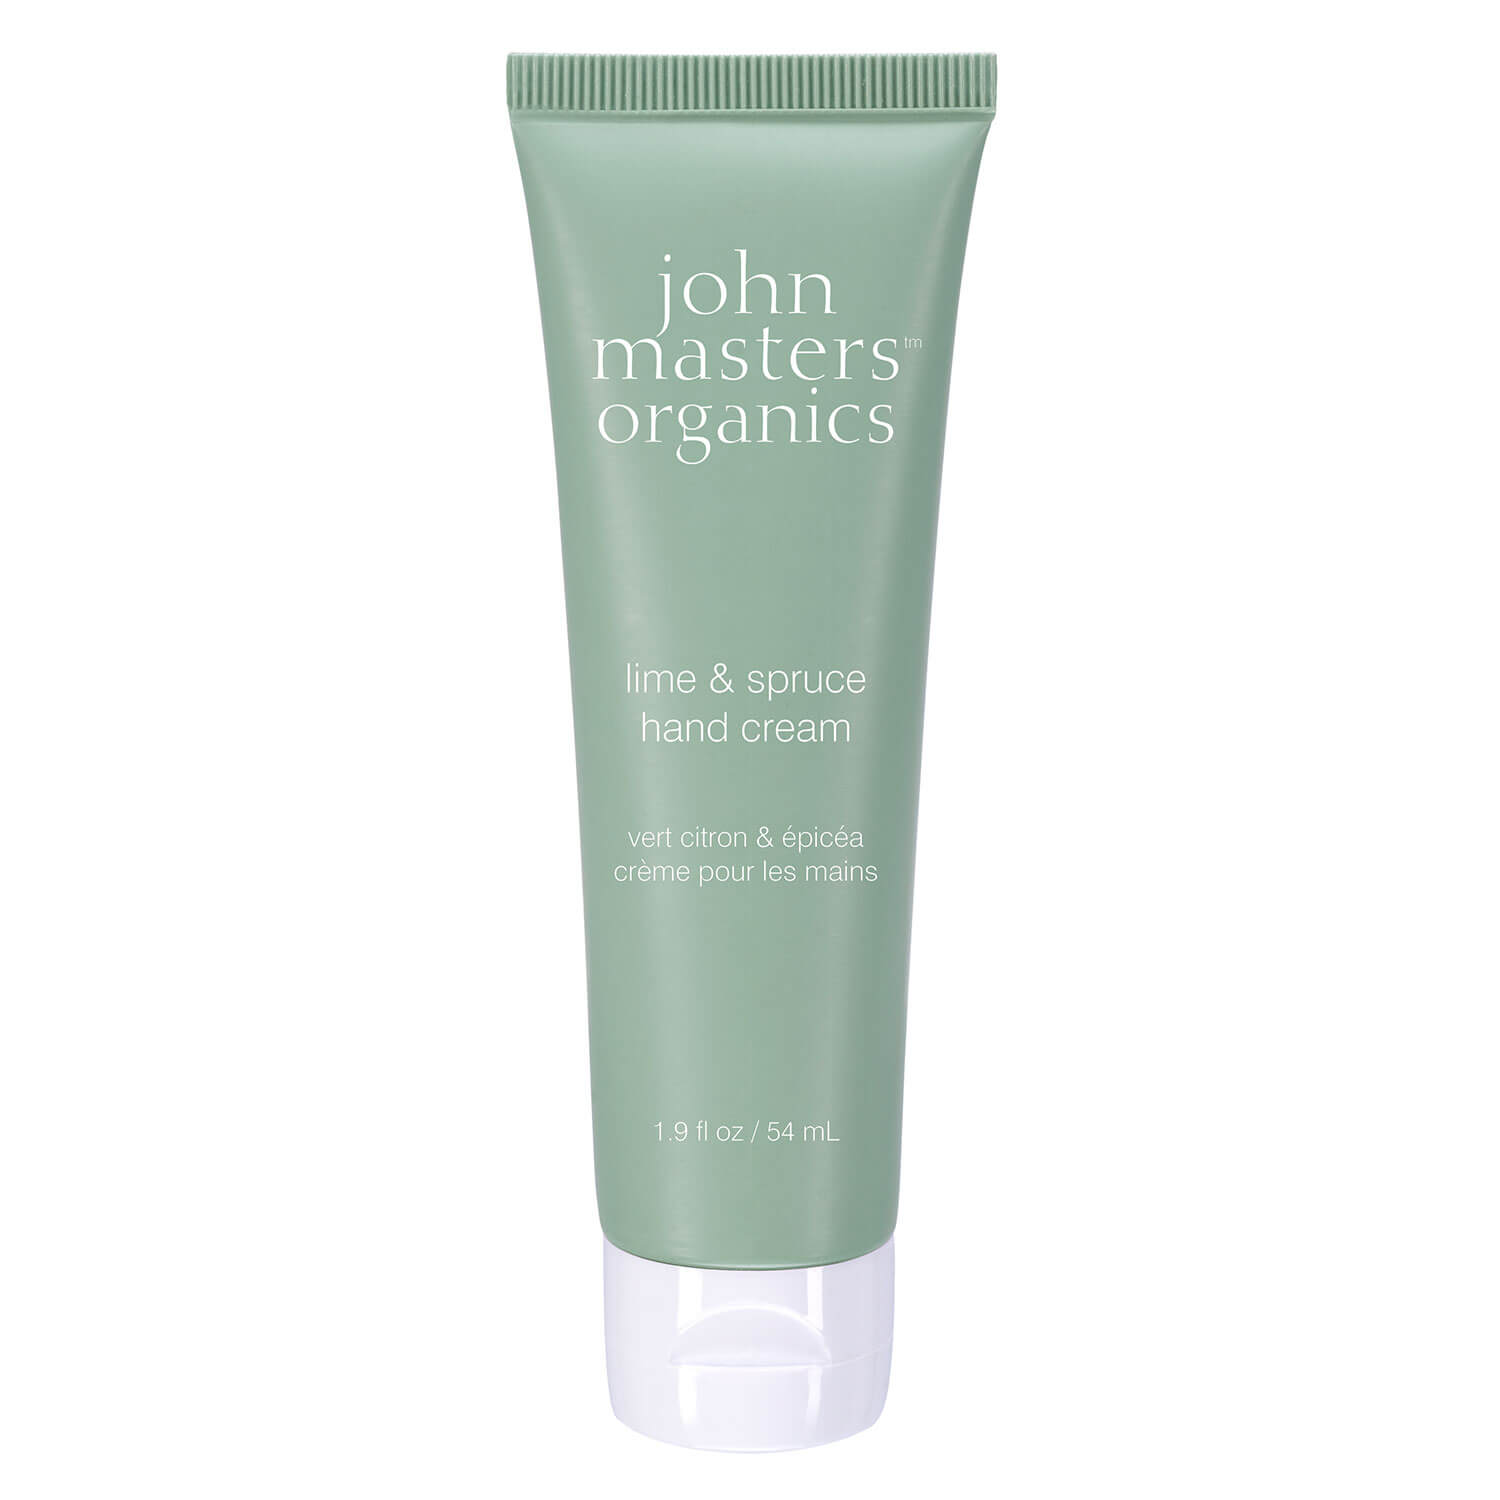 JMO Skin & Body Care - Lime & Spruce Handcream